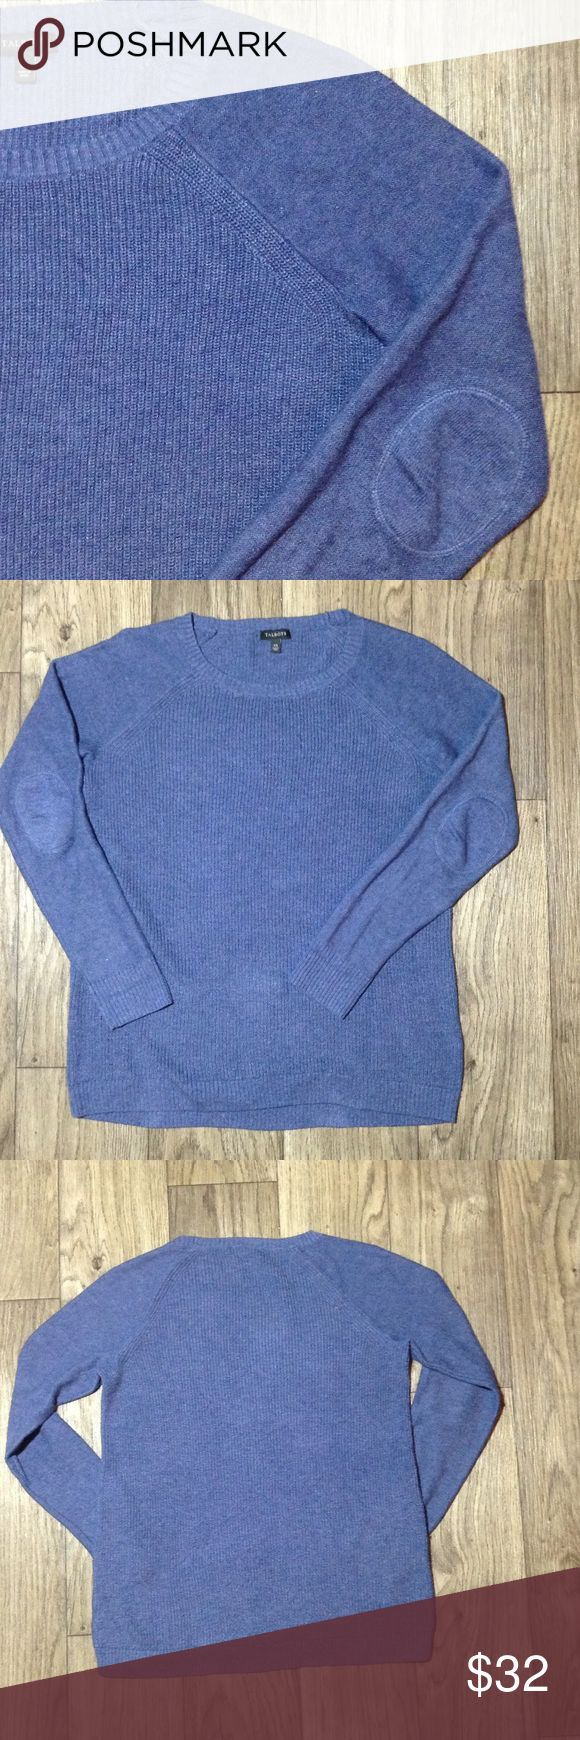 Talbots blue knit elbow patched sweater Sz XS Talbots cable knit blue elbow patched pullover sweater Sz xsmall in great condition. If you have any questions please leave a comment and I'll get back to you asap. Thank you! Talbots Sweaters Crew & Scoop Necks